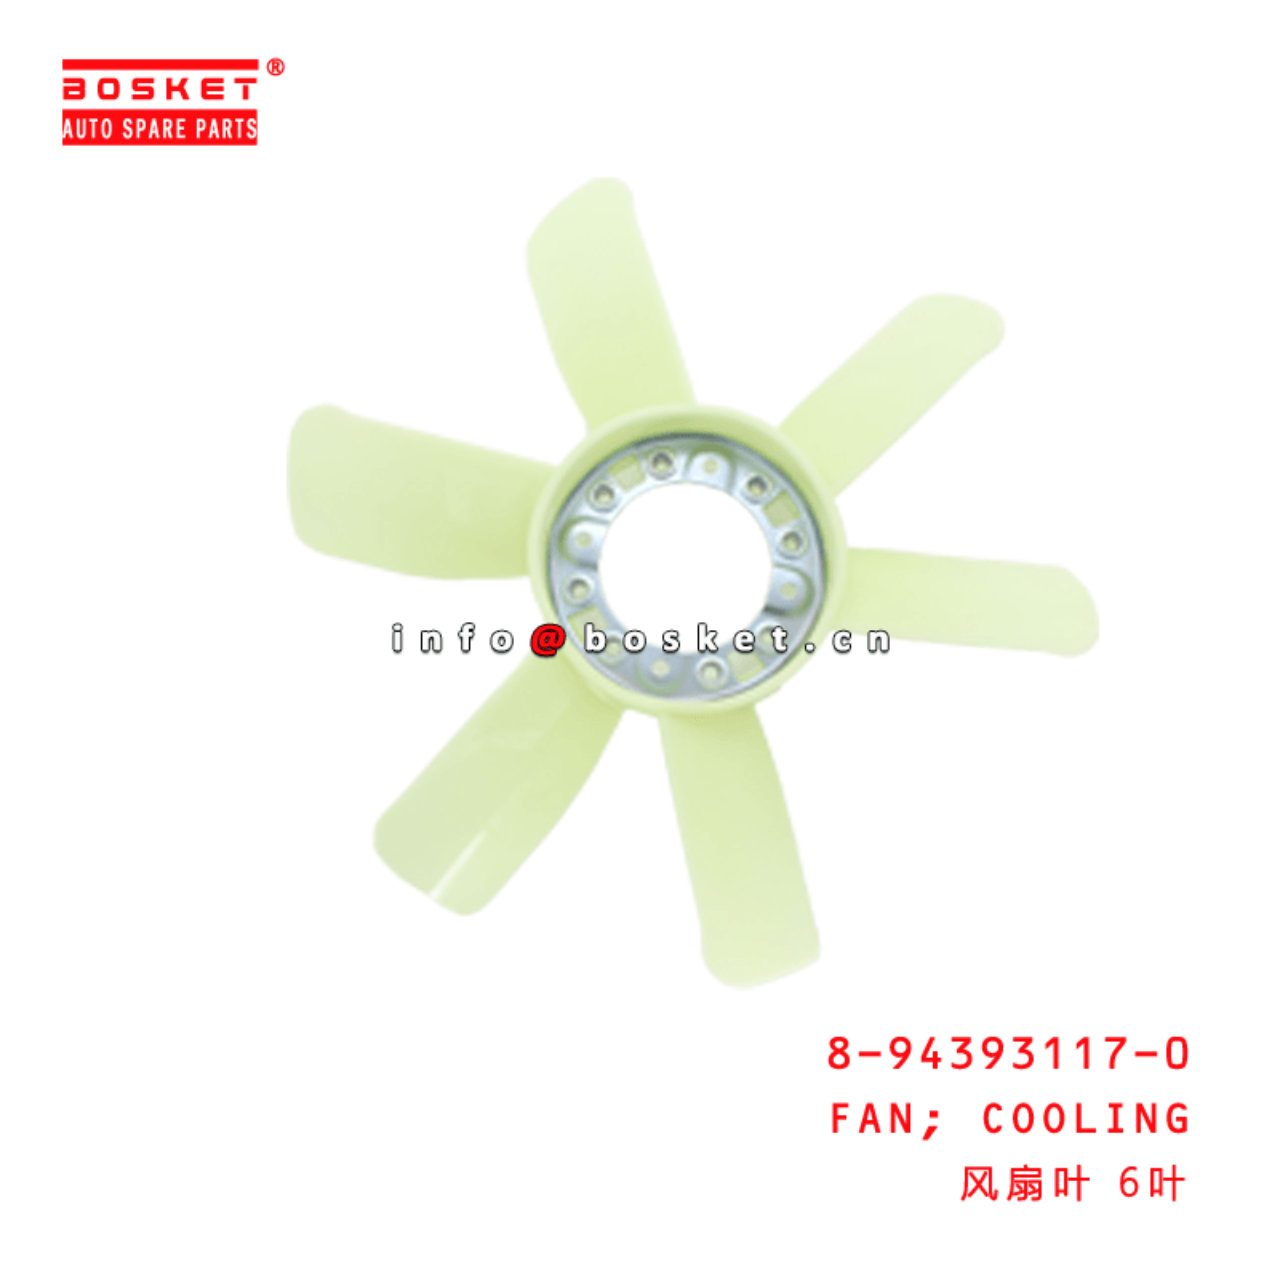 8-94393117-0 8943931170 Cooling Fan Suitable for I...